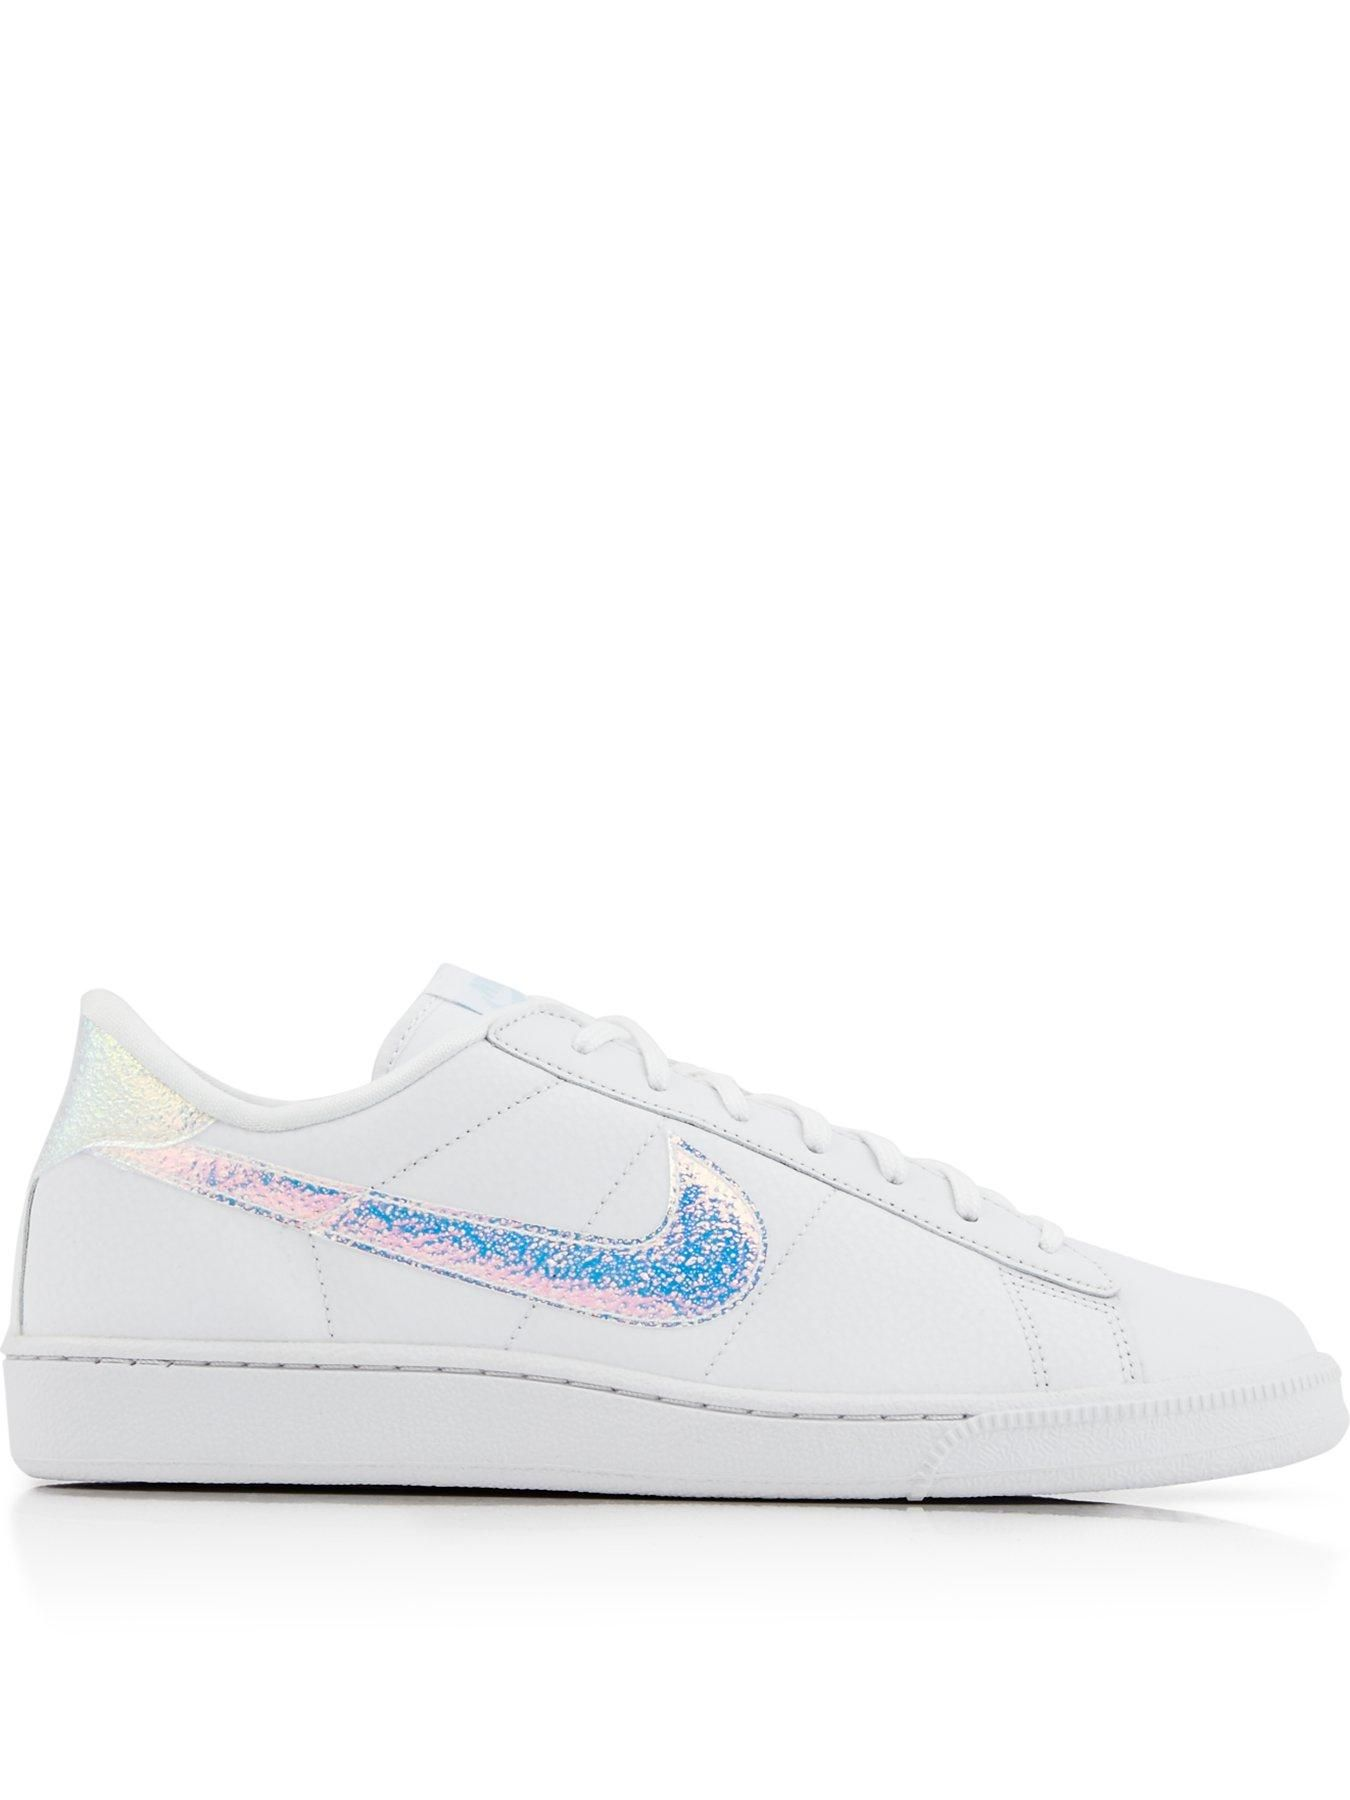 Shop Nike Tennis Classic Premium Holographic Trainers - White at Very  Exclusive; designer fashion brands available online with free next day  delivery and ...